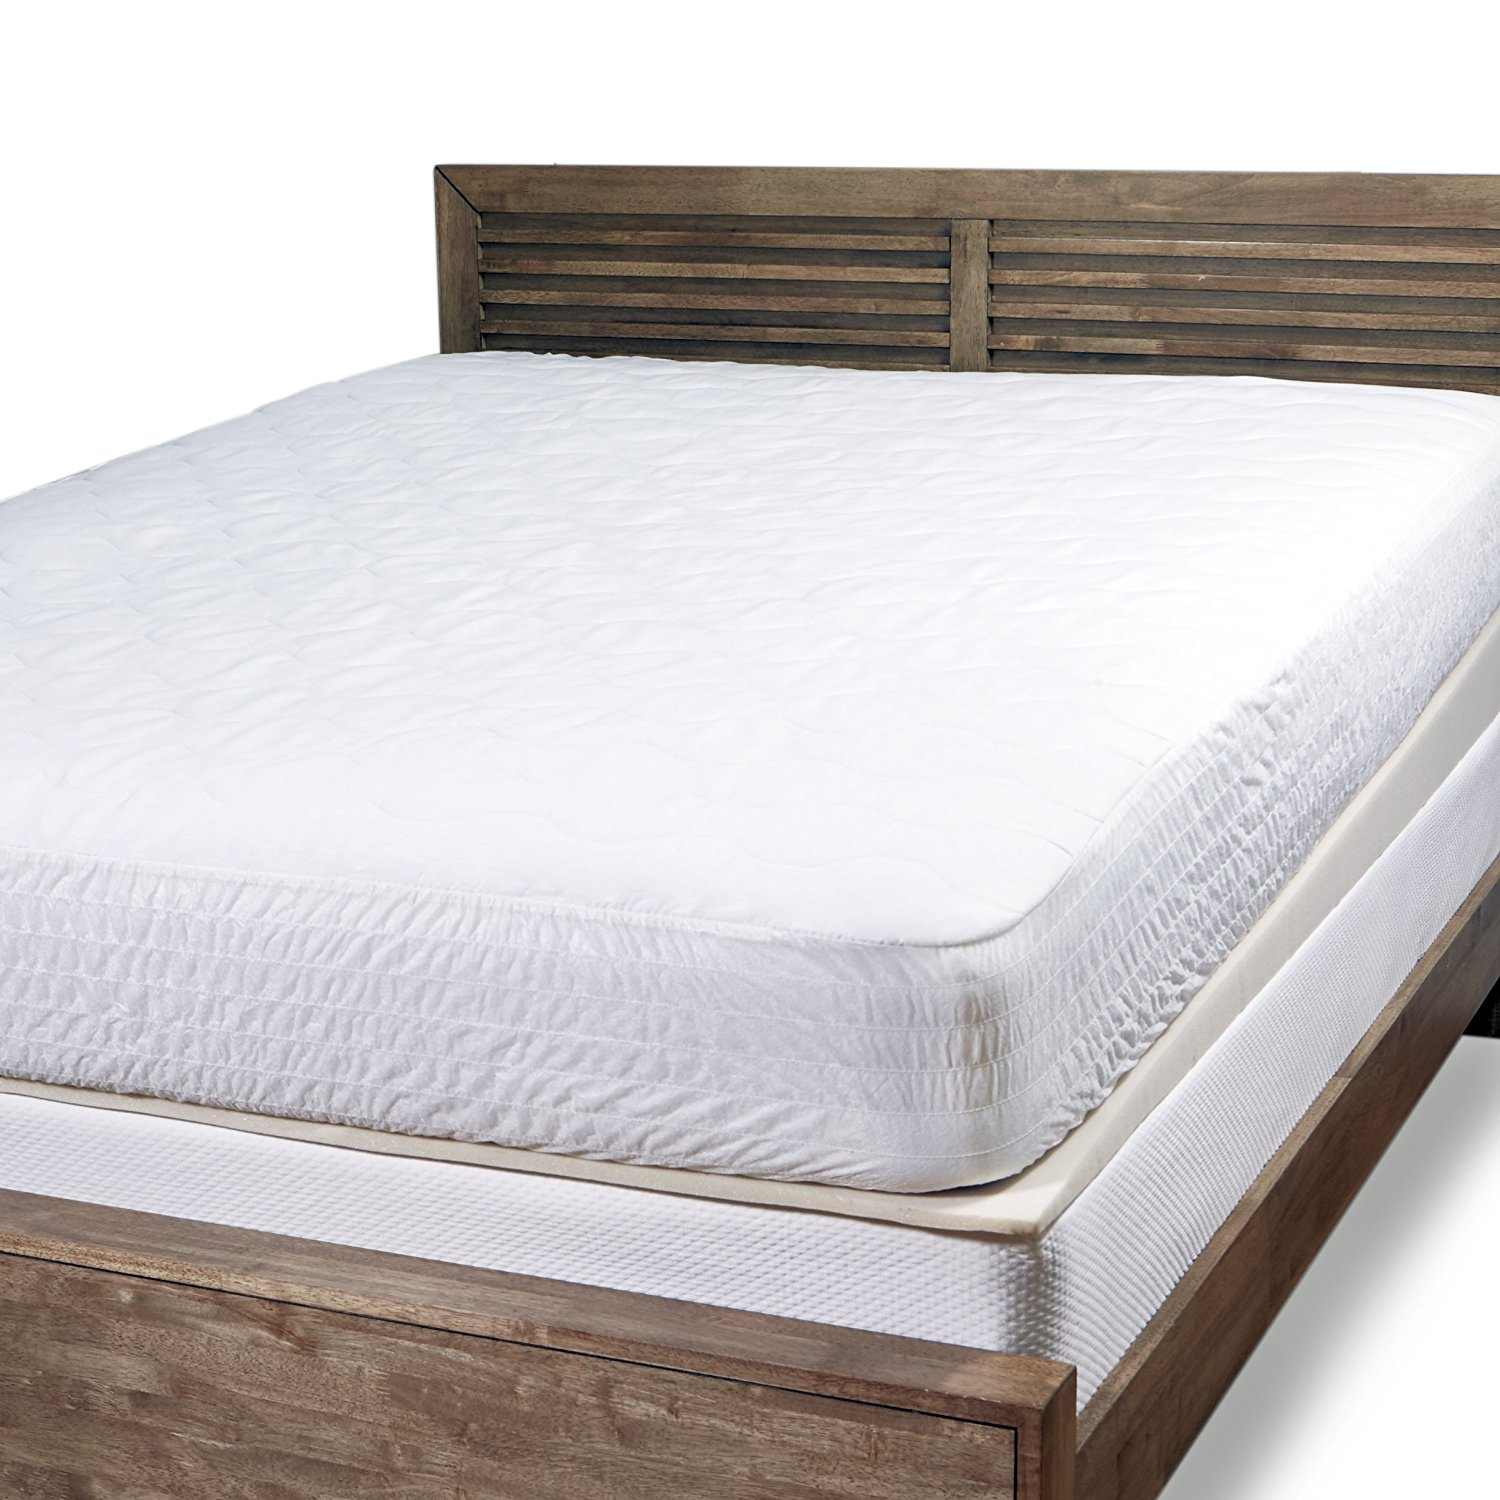 Bed Wedge Benefits (including Product Recommendations)